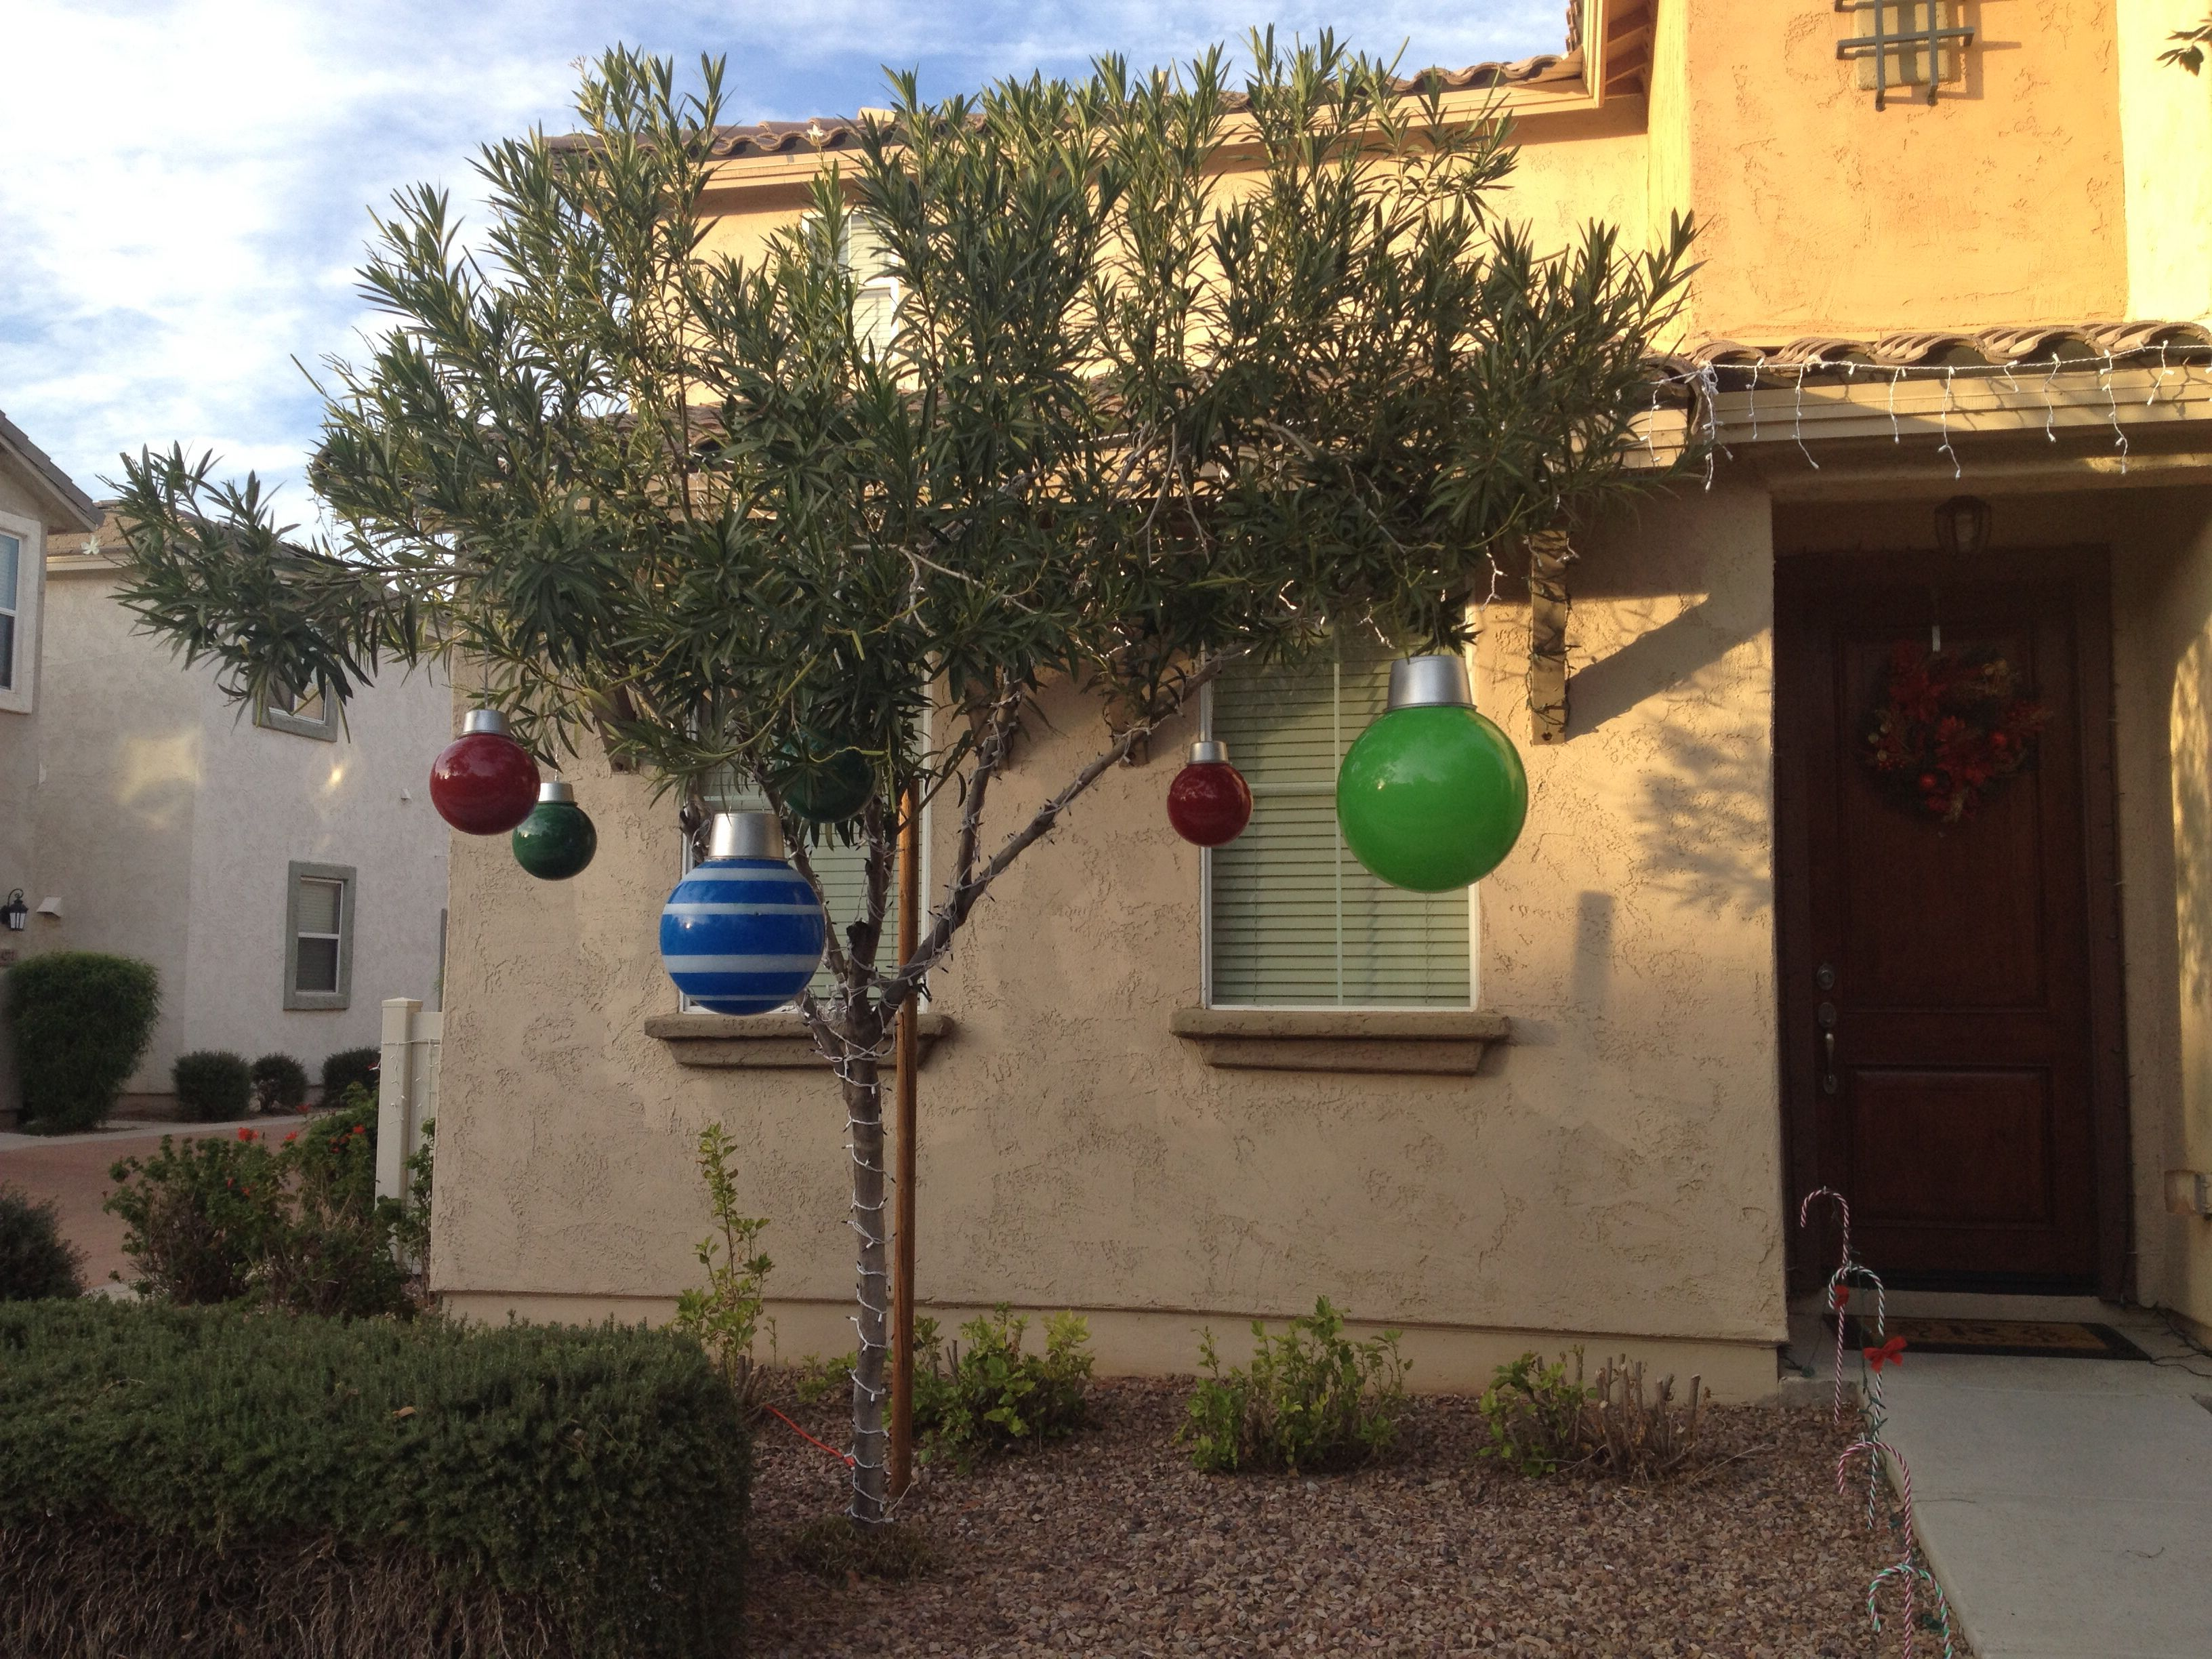 Giant Christmas ornaments made from bouncy balls and spray painted